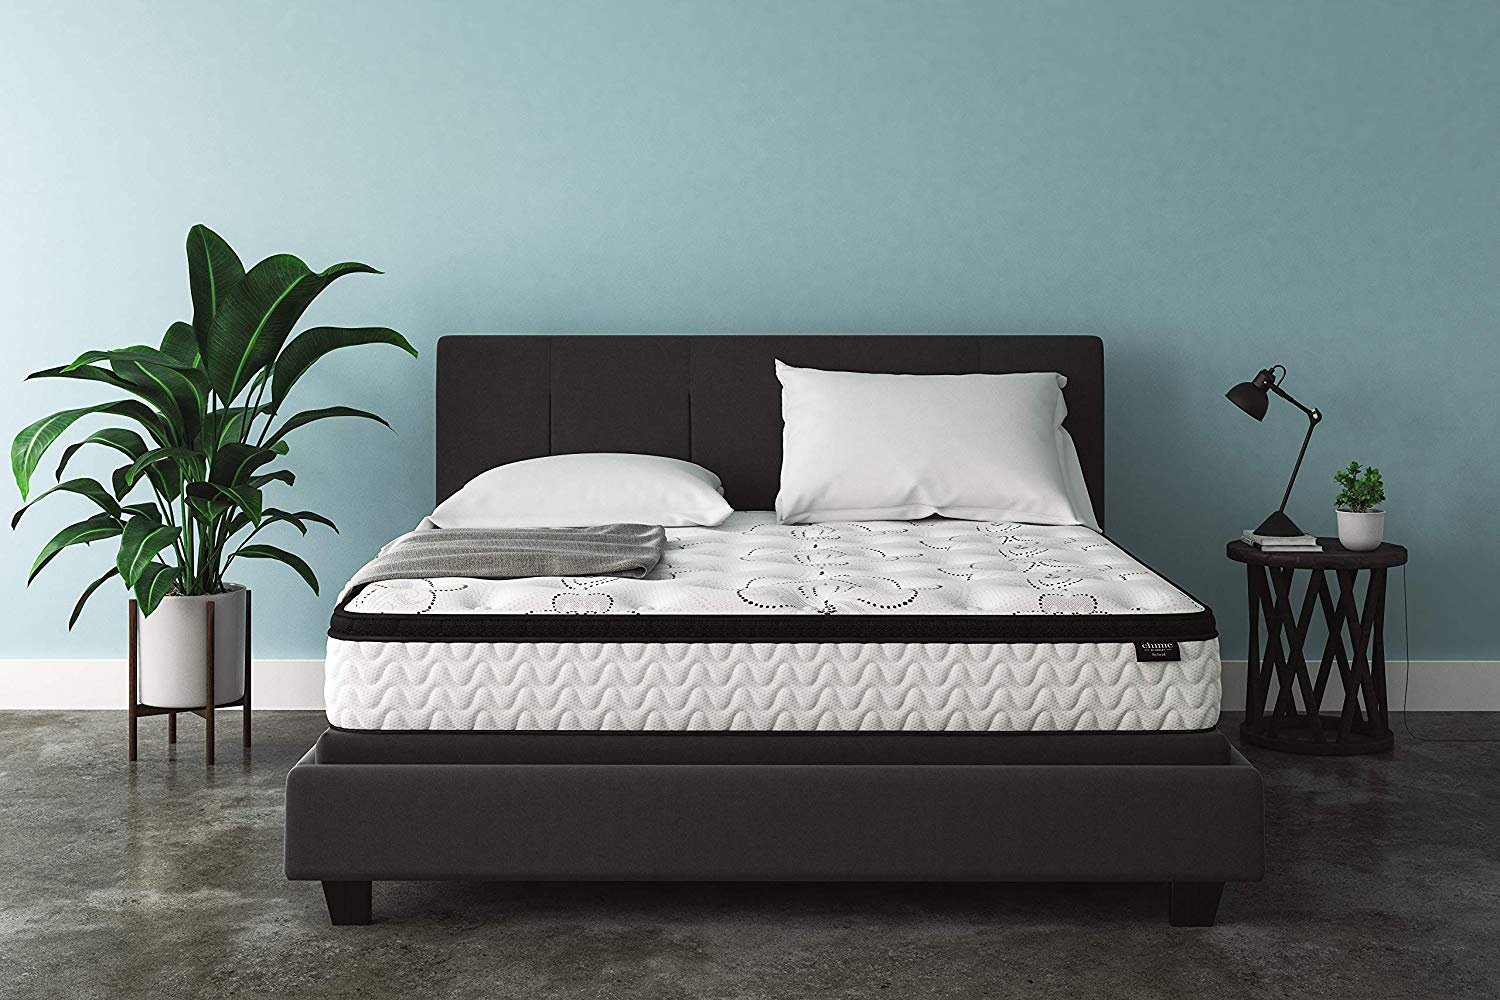 Best Mattress Under $500 – Review & Buying Guide